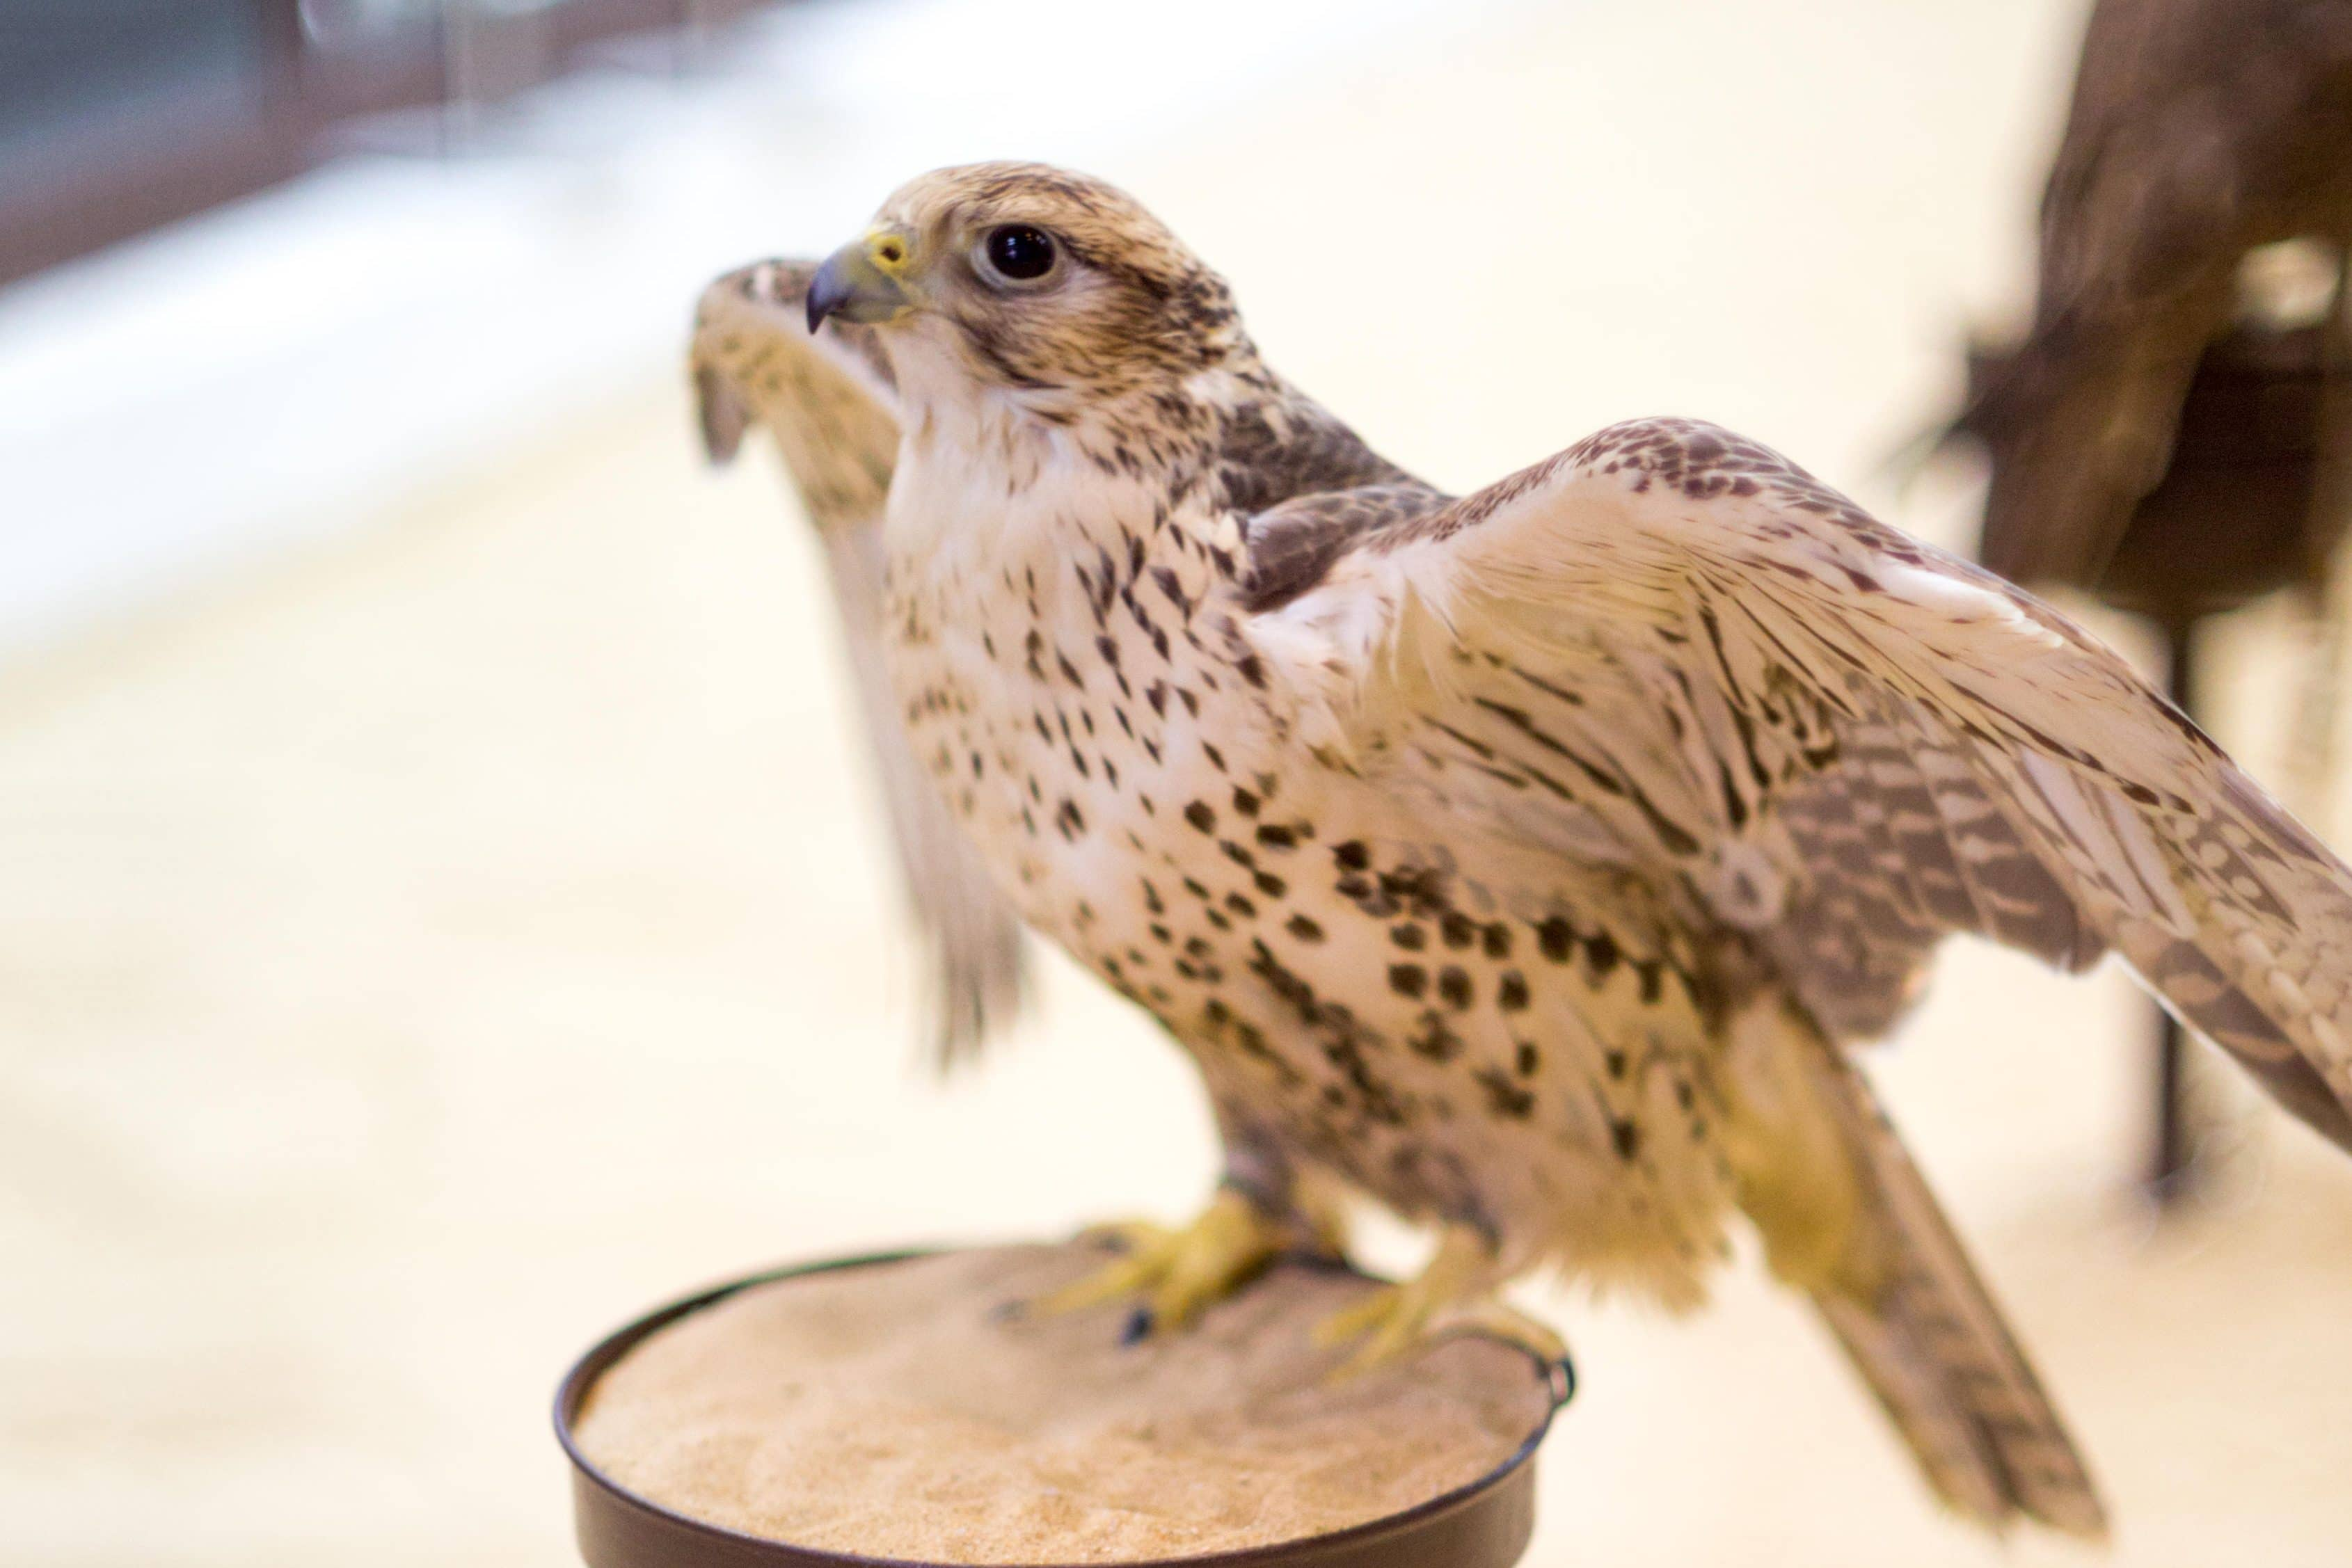 A bird spreads its wings at The Falcon Souq